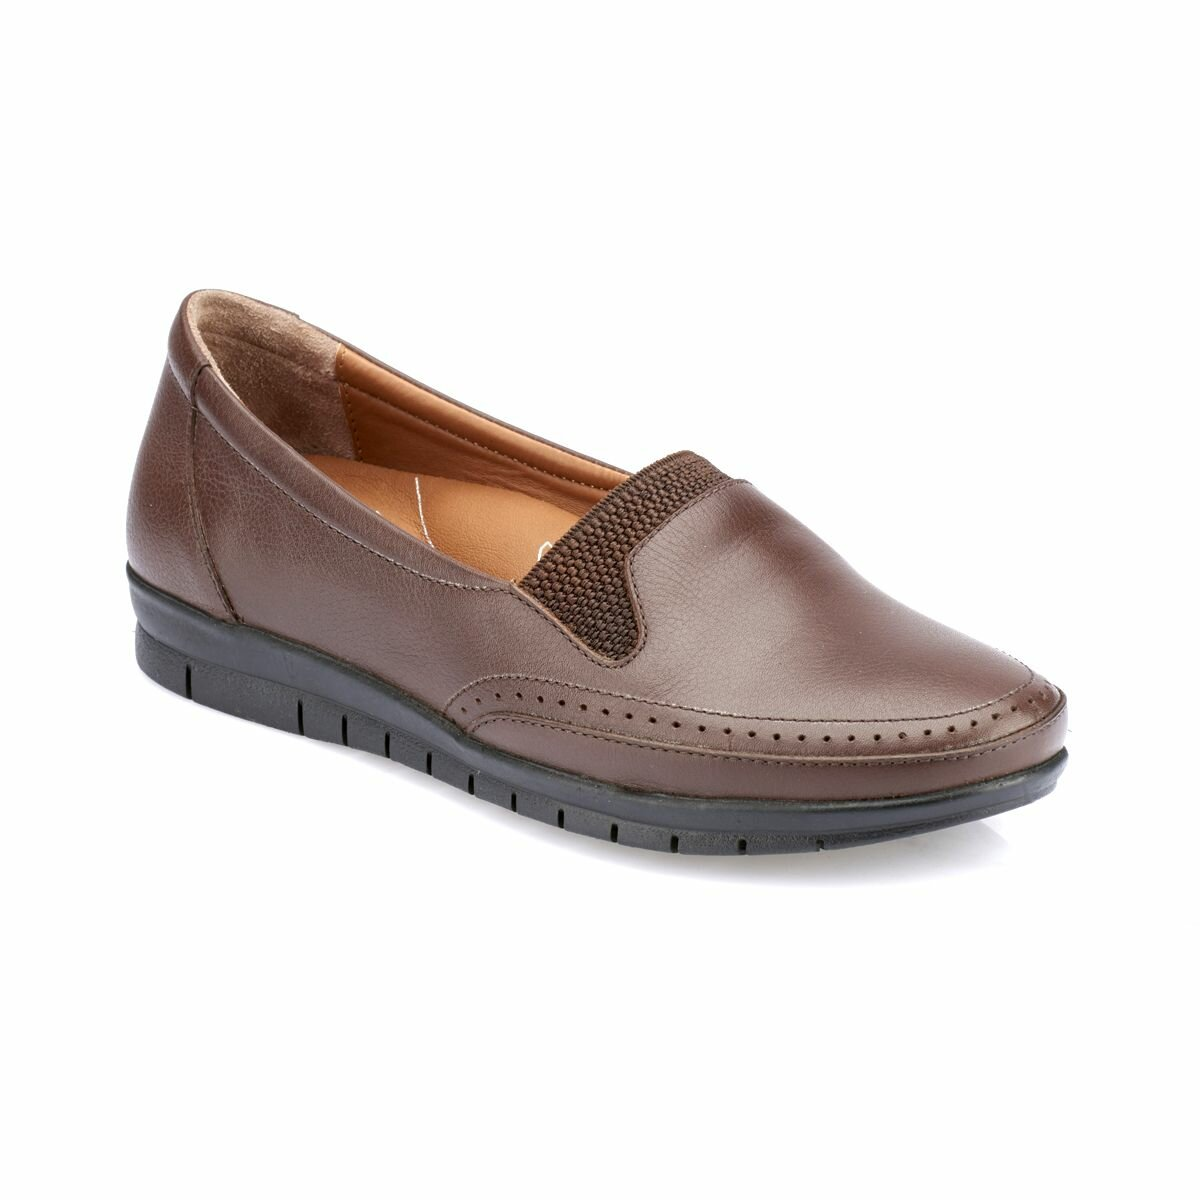 FLO 82. 100171.Z Brown Women 'S Shoes Polaris 5 Point